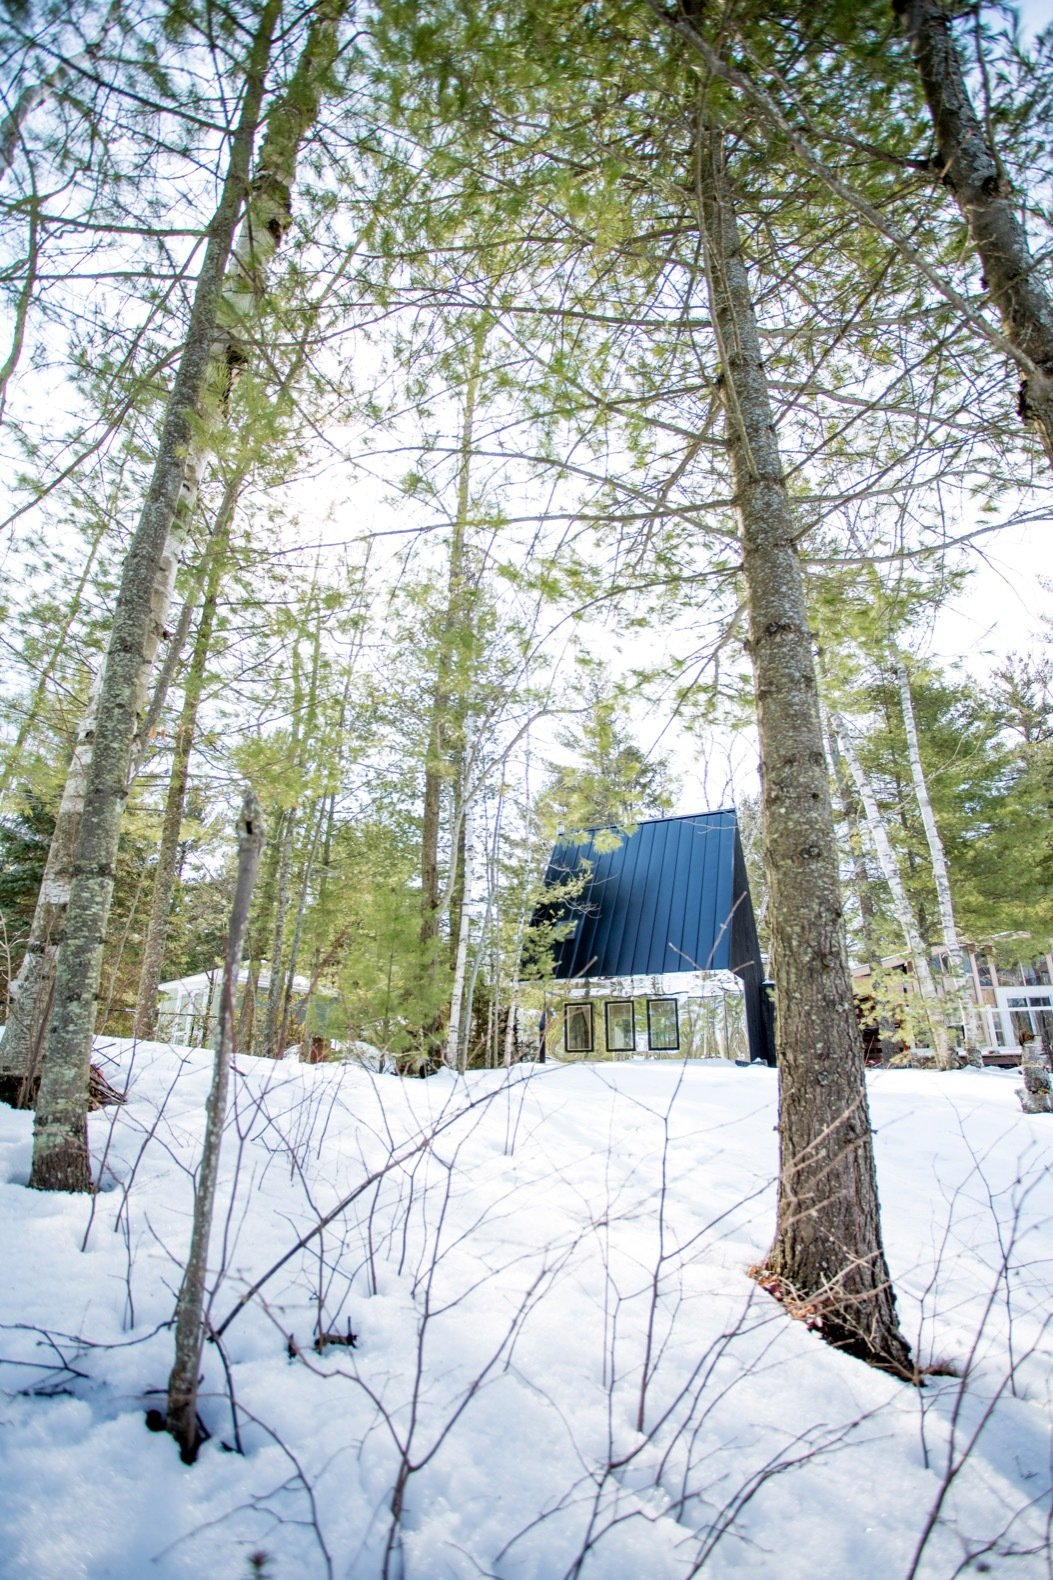 Exterior, Gable RoofLine, Metal Roof Material, Cabin Building Type, Metal Siding Material, and Glass Siding Material The cabin is surrounded by a thick forest of birch and spruce.